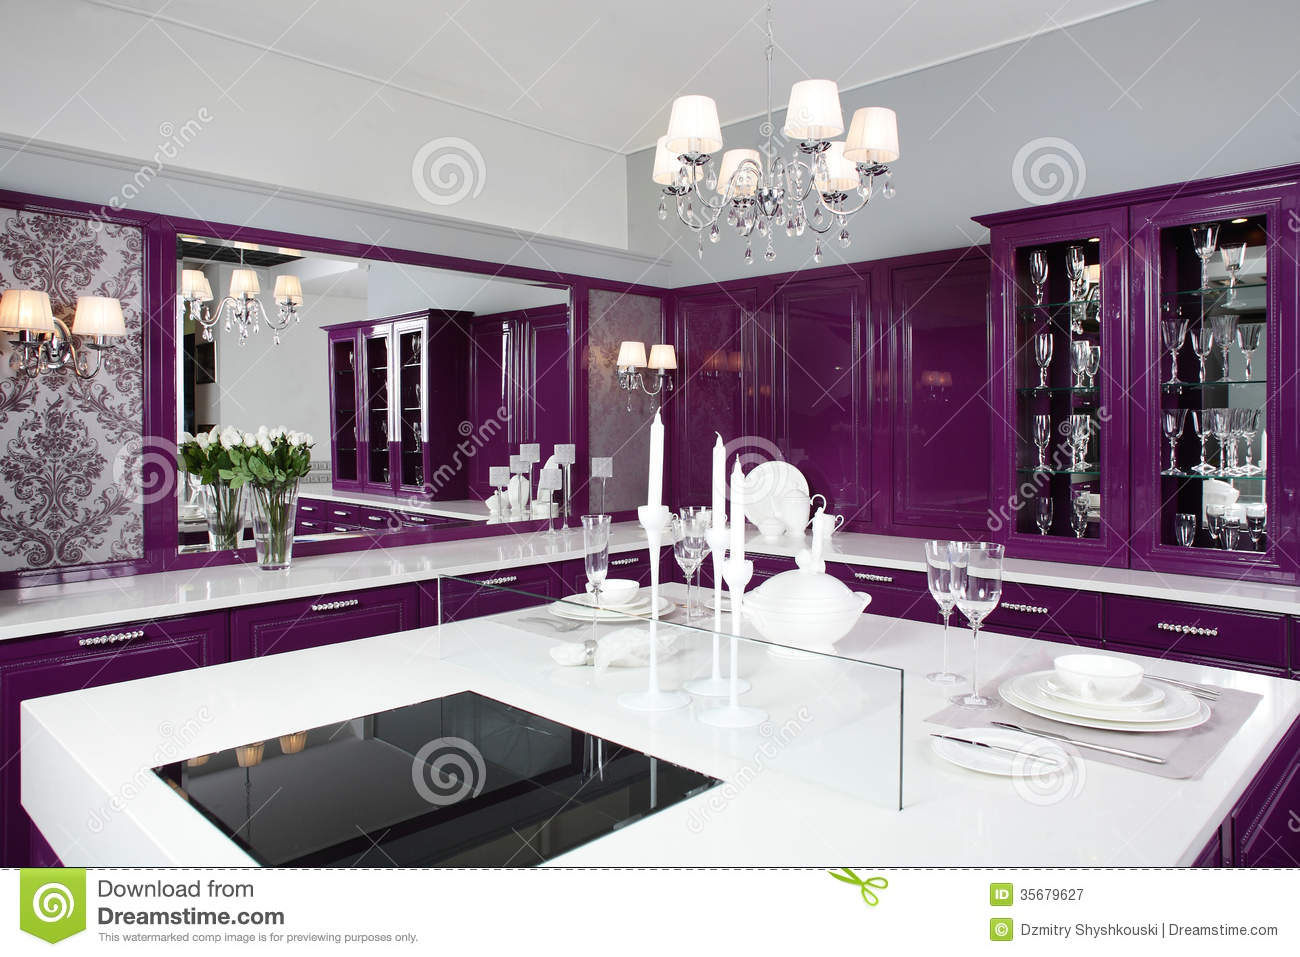 Modern Purple Kitchen With Stylish Furniture Stock Image